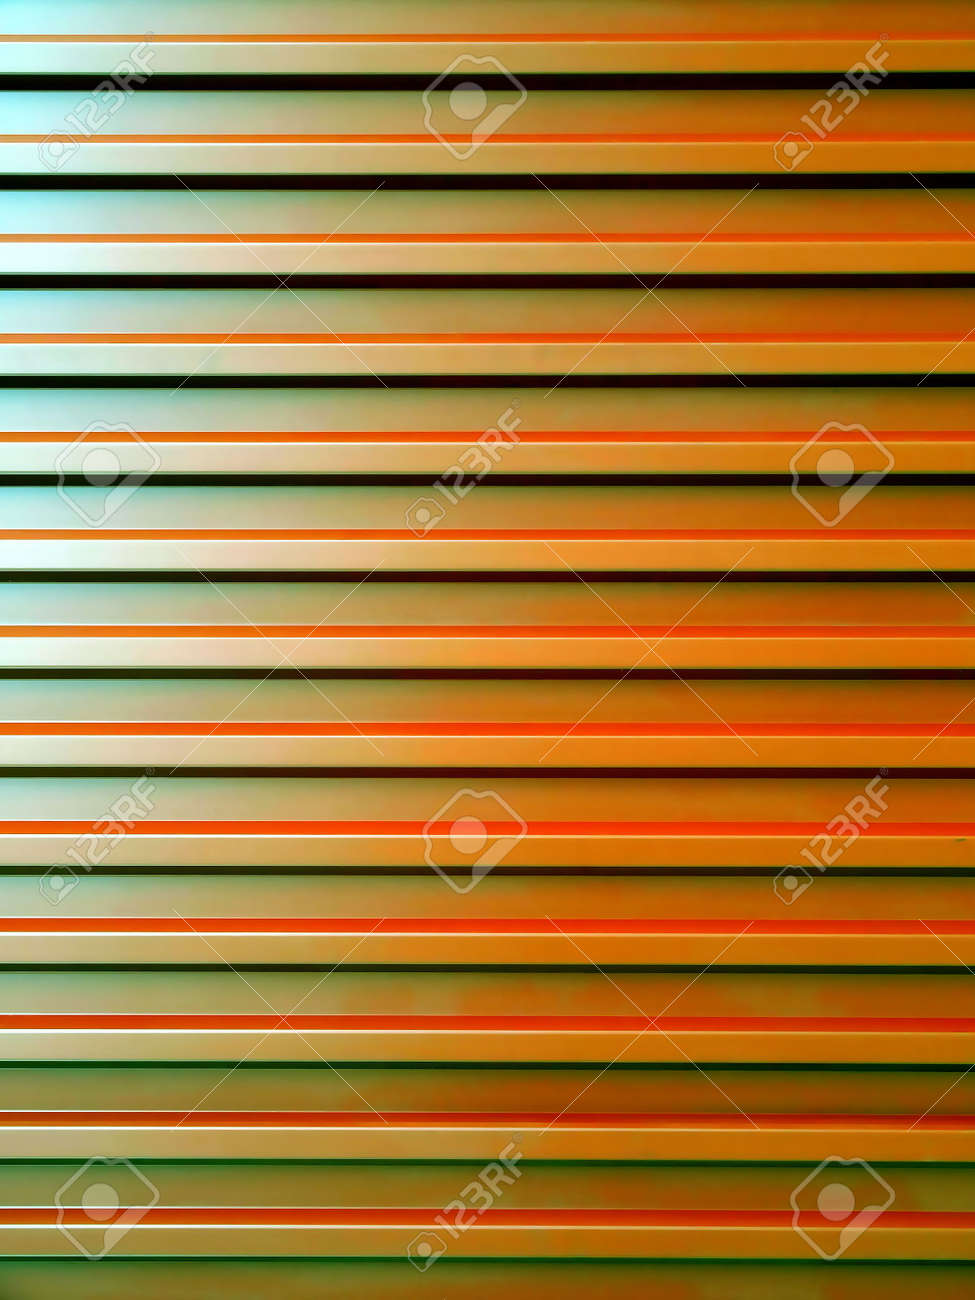 Corrugated steel sheet useful as a background -shining metal surface with light reflections Stock Photo - 5398436